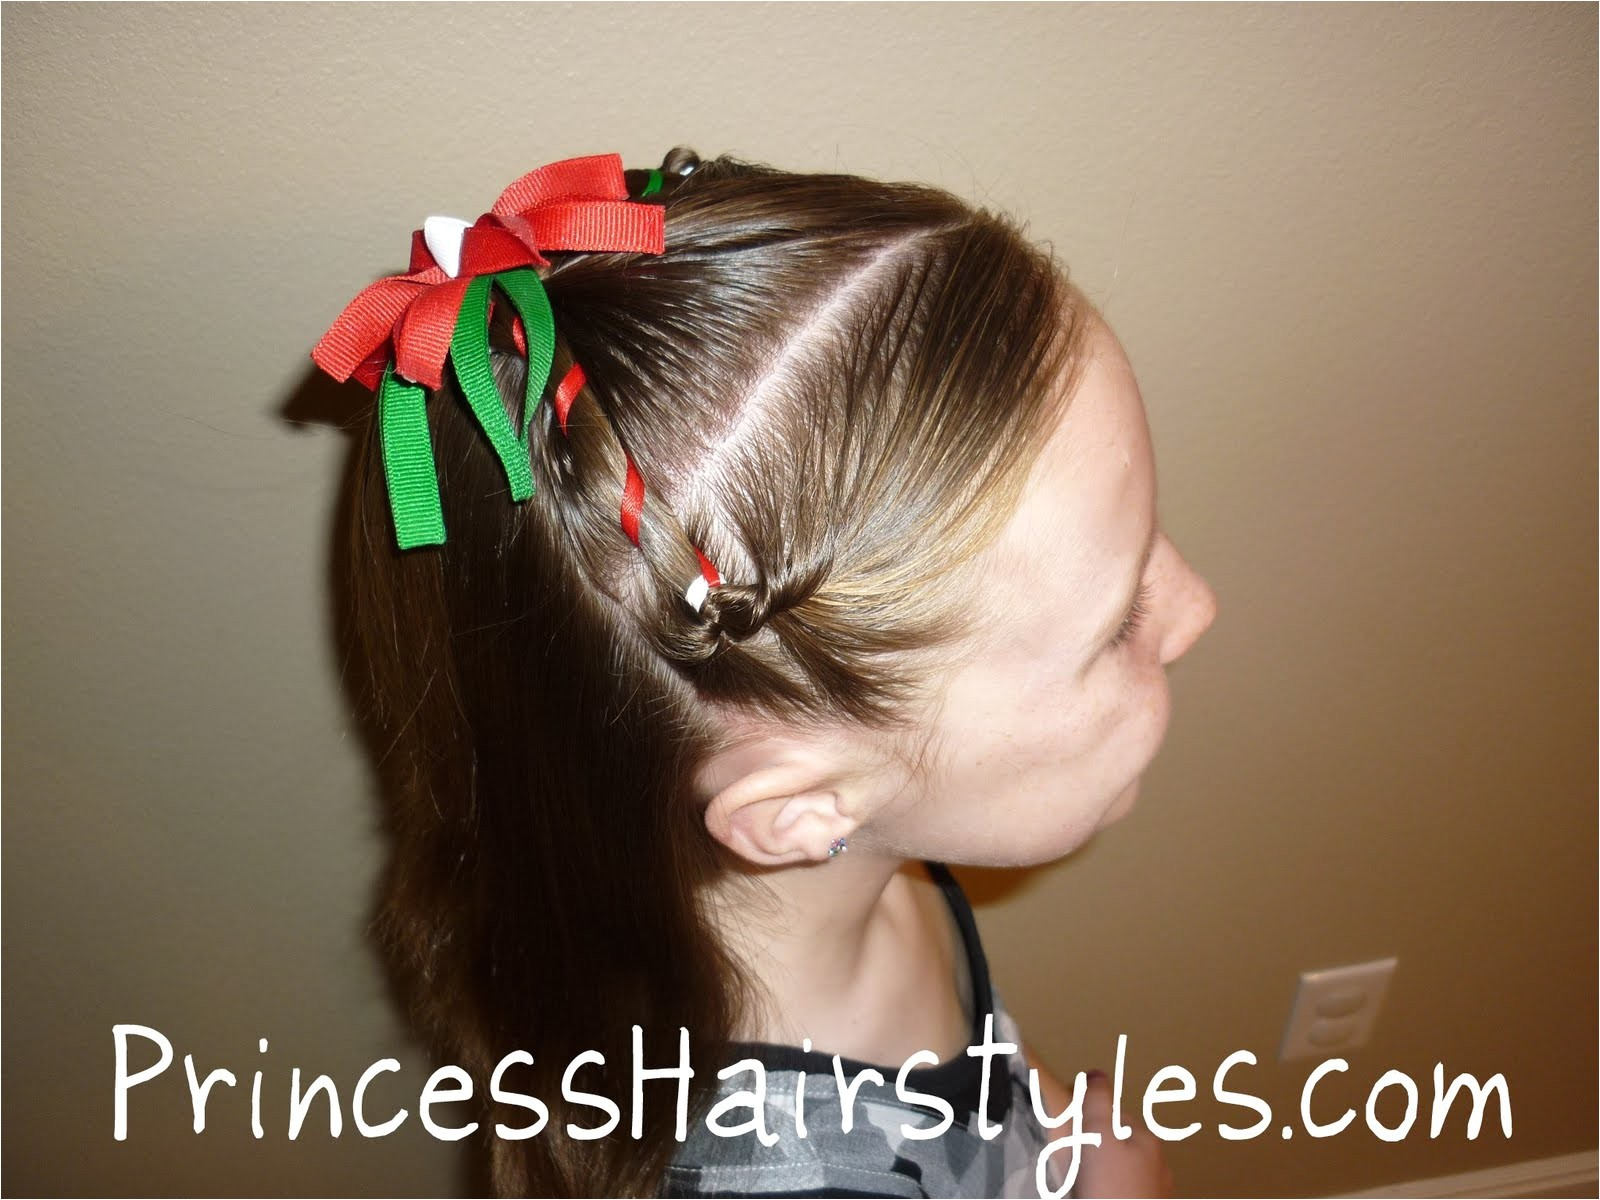 Cute Easy Hairstyles for Christmas Christmas Hairstyle Easy Hairstyles for Girls